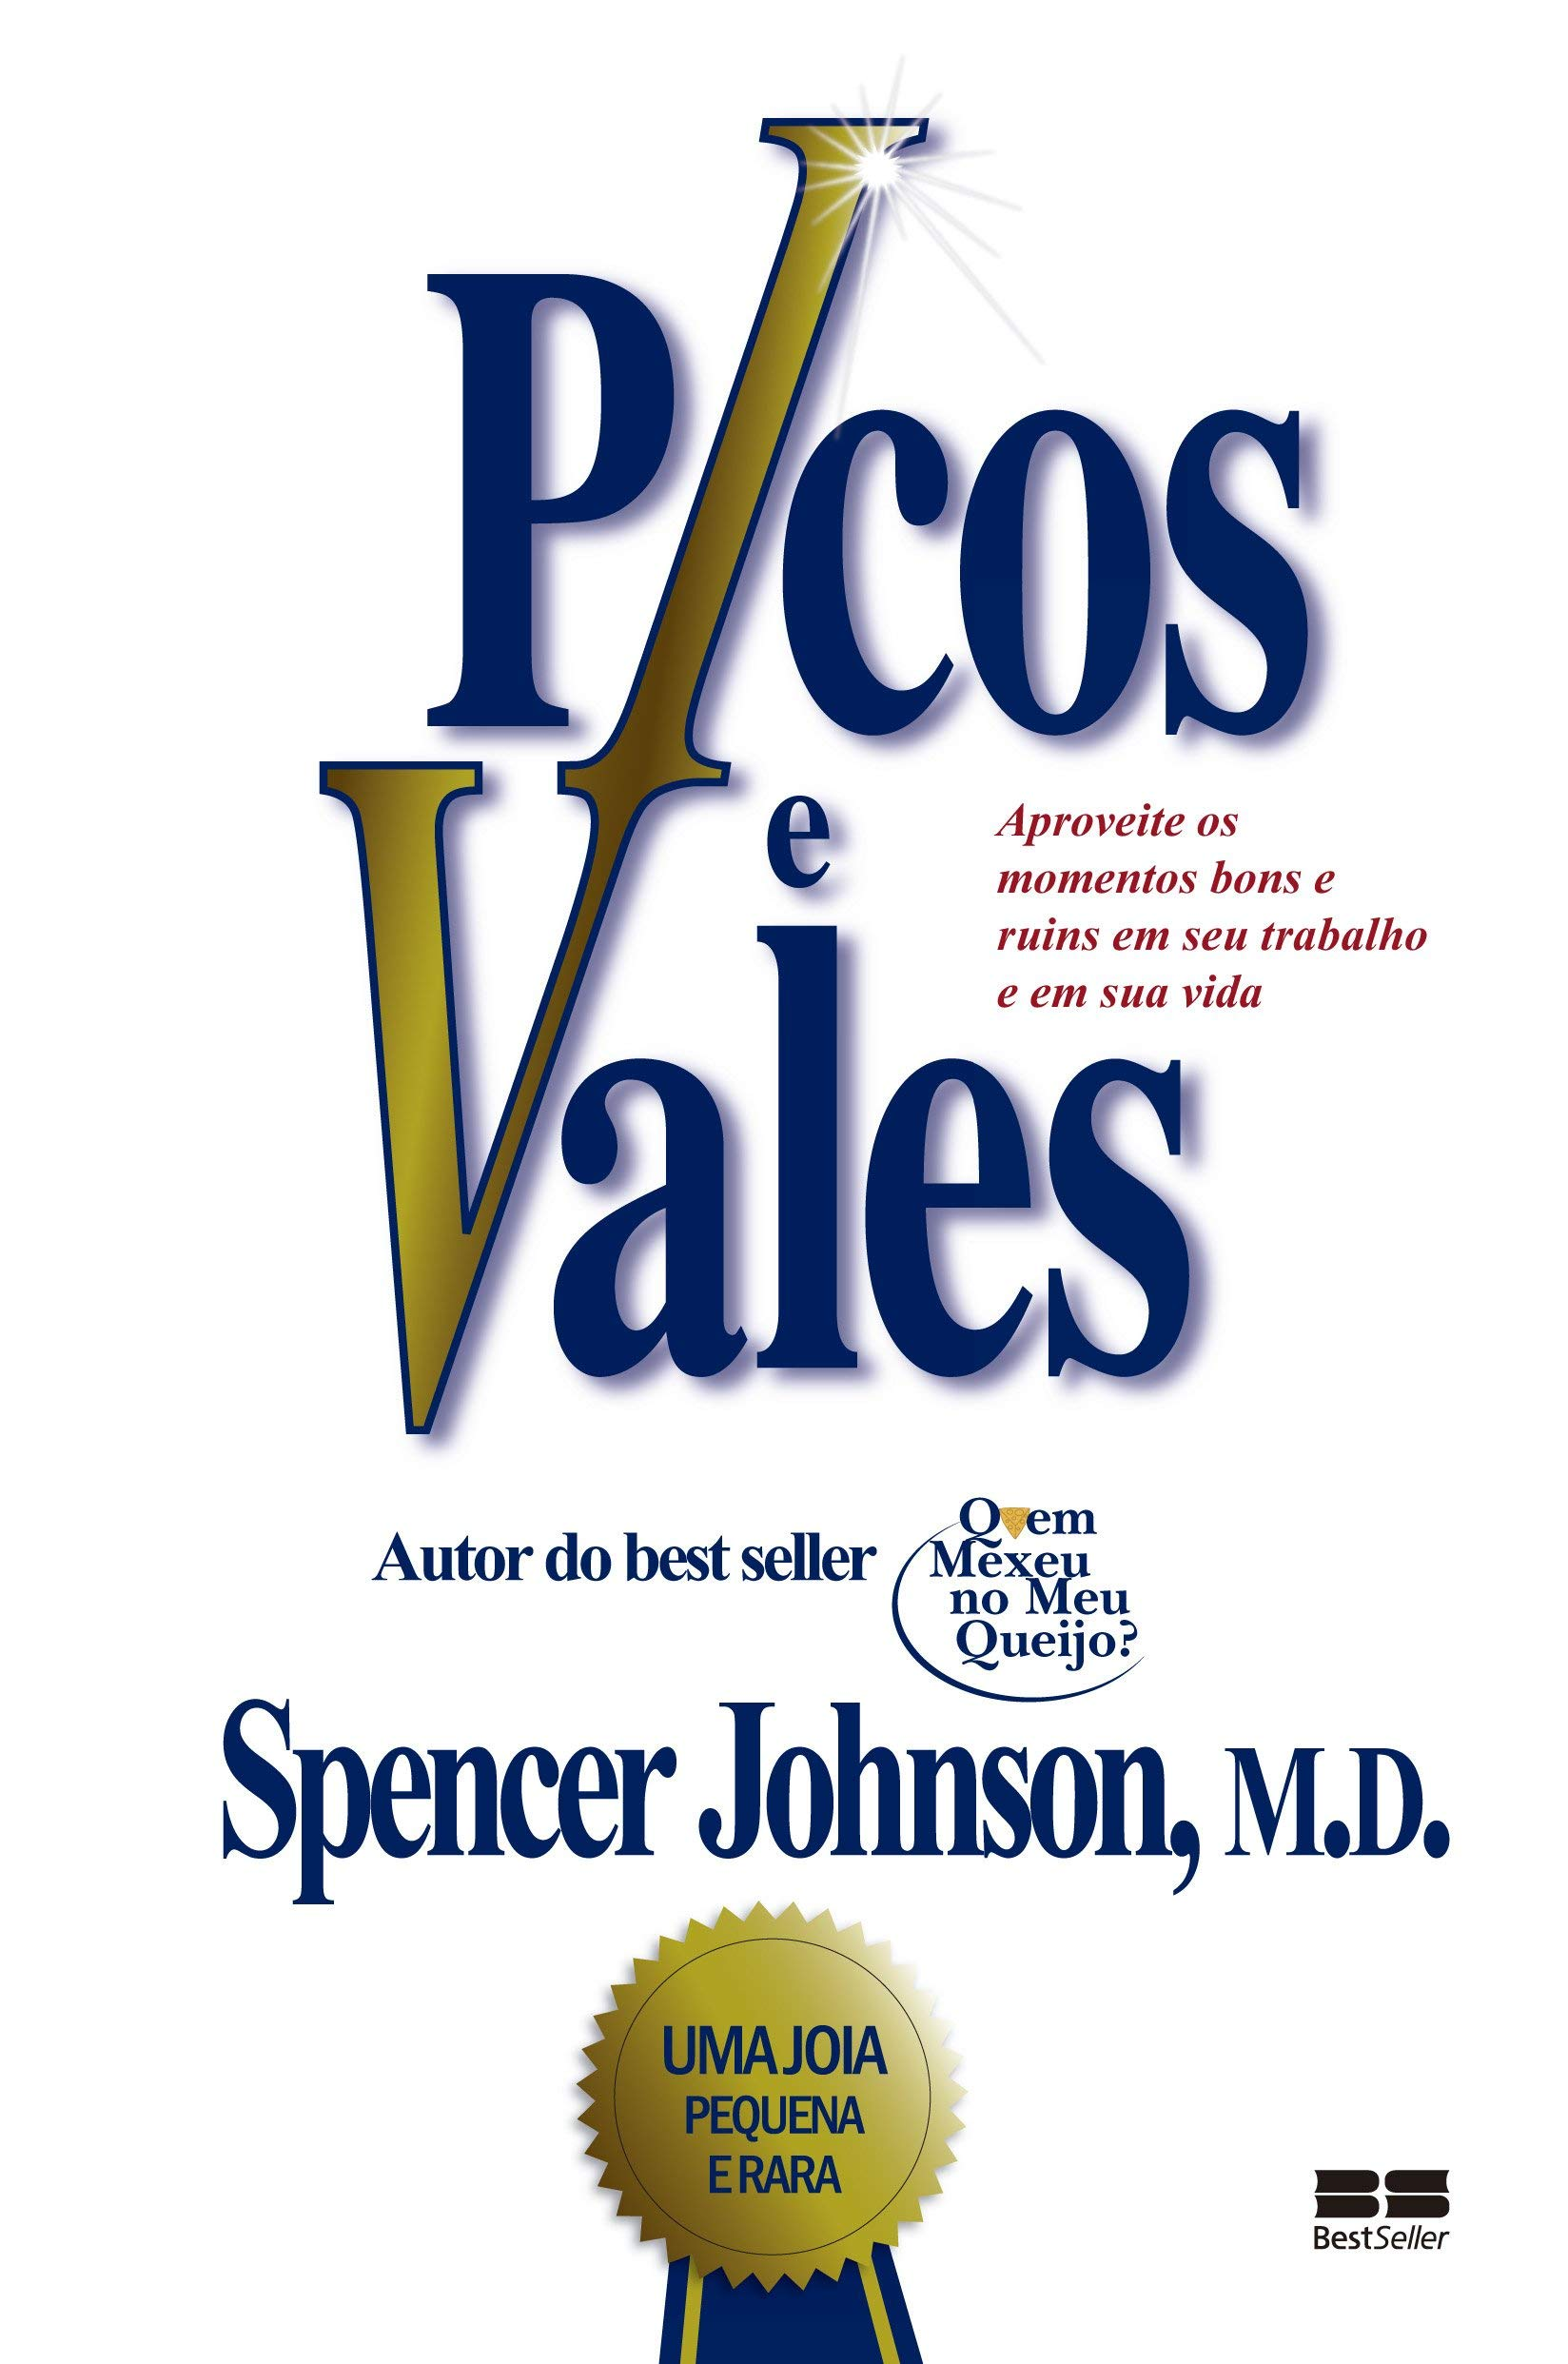 Picos e vales (Dr. Spencer Johnson)